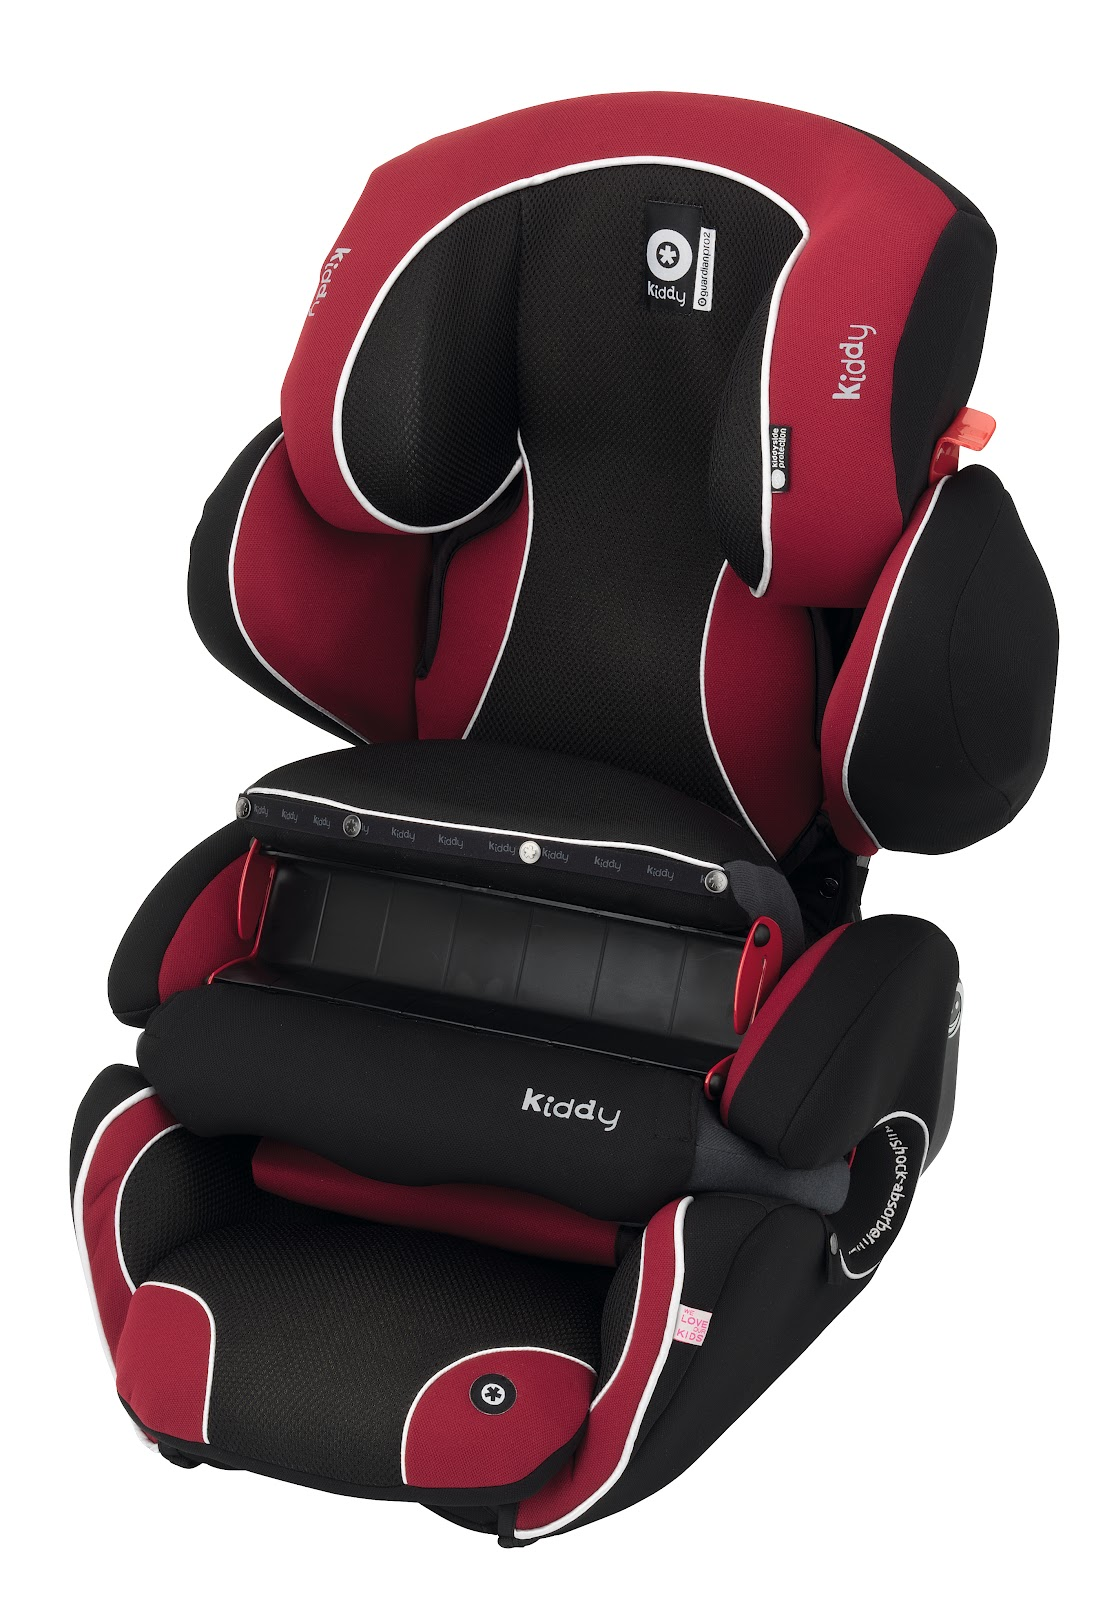 kate takes 5 competition win a kiddy guardian pro 2 car seat worth 163 225